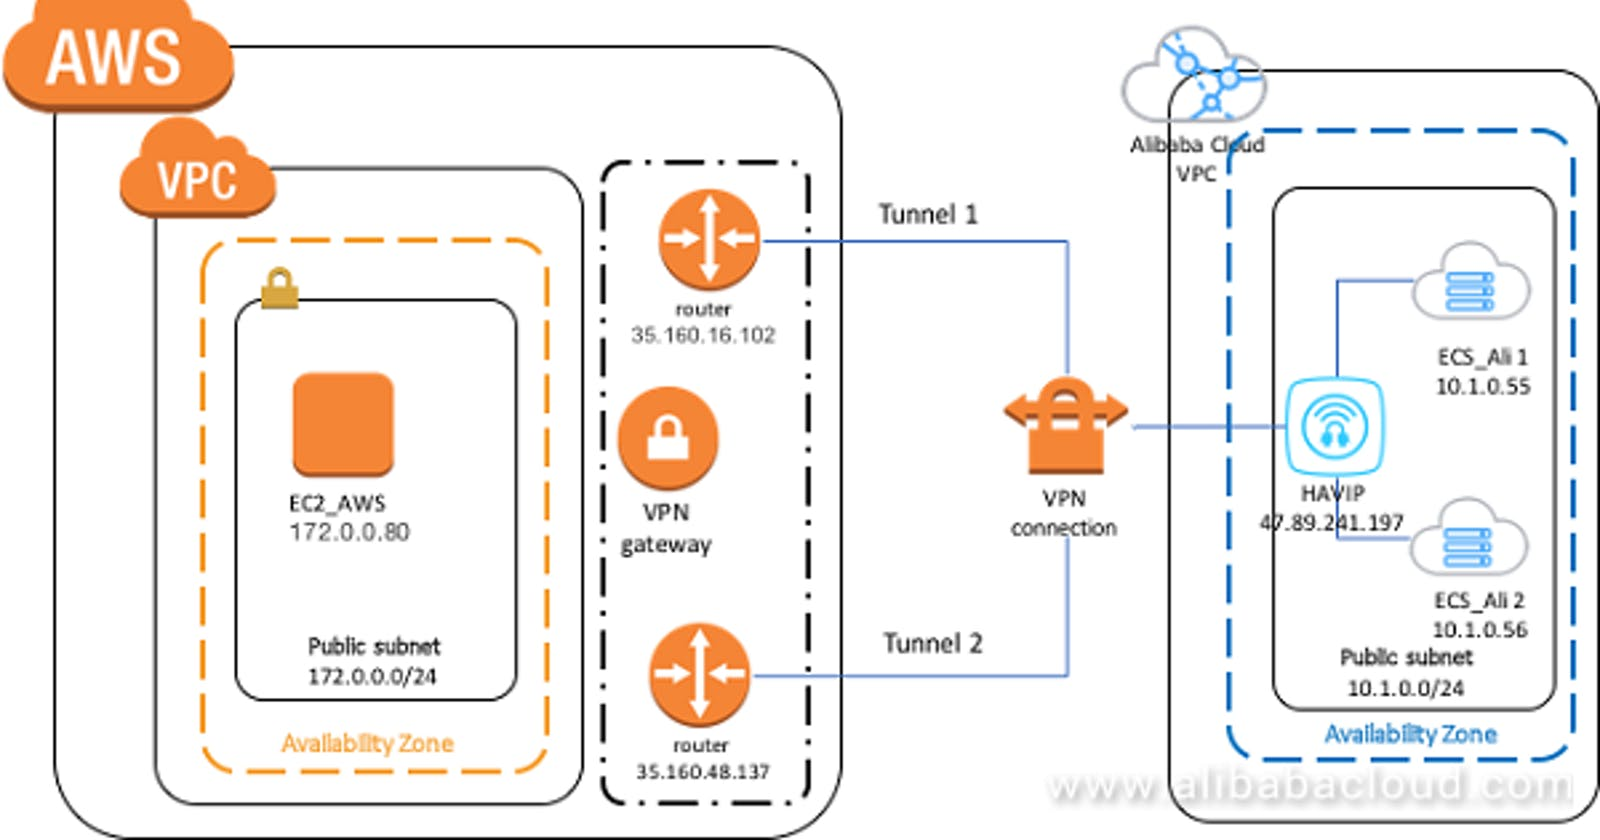 Setting up a VPN connection between AWS and Alicloud using Terraform